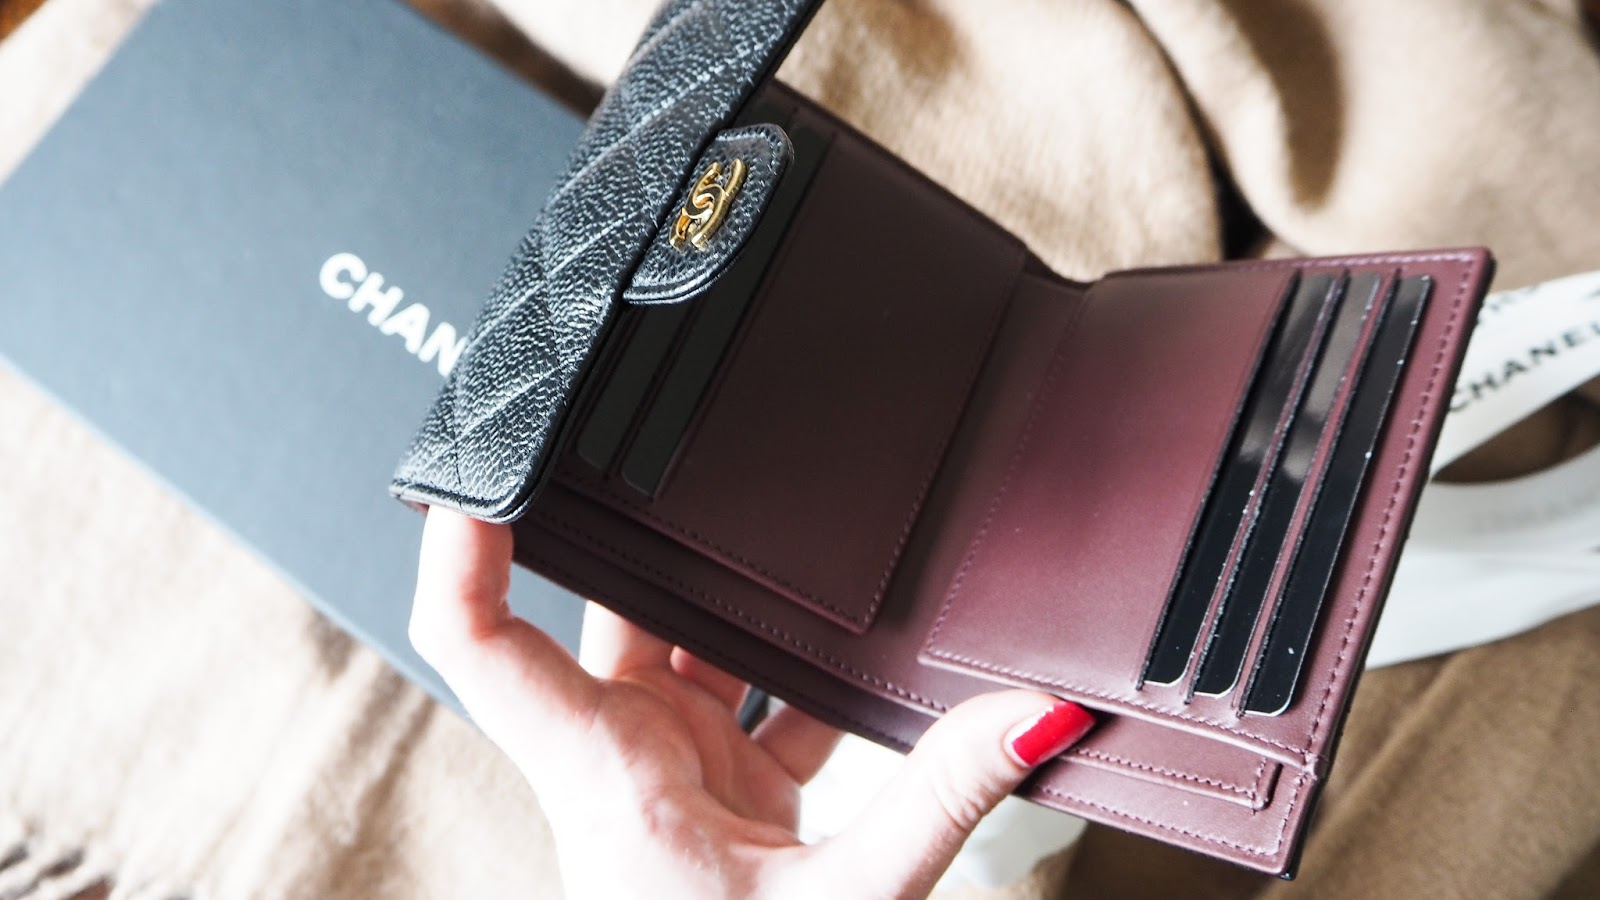 Inside of the Chanel classic small lamskin wallet, photos and review